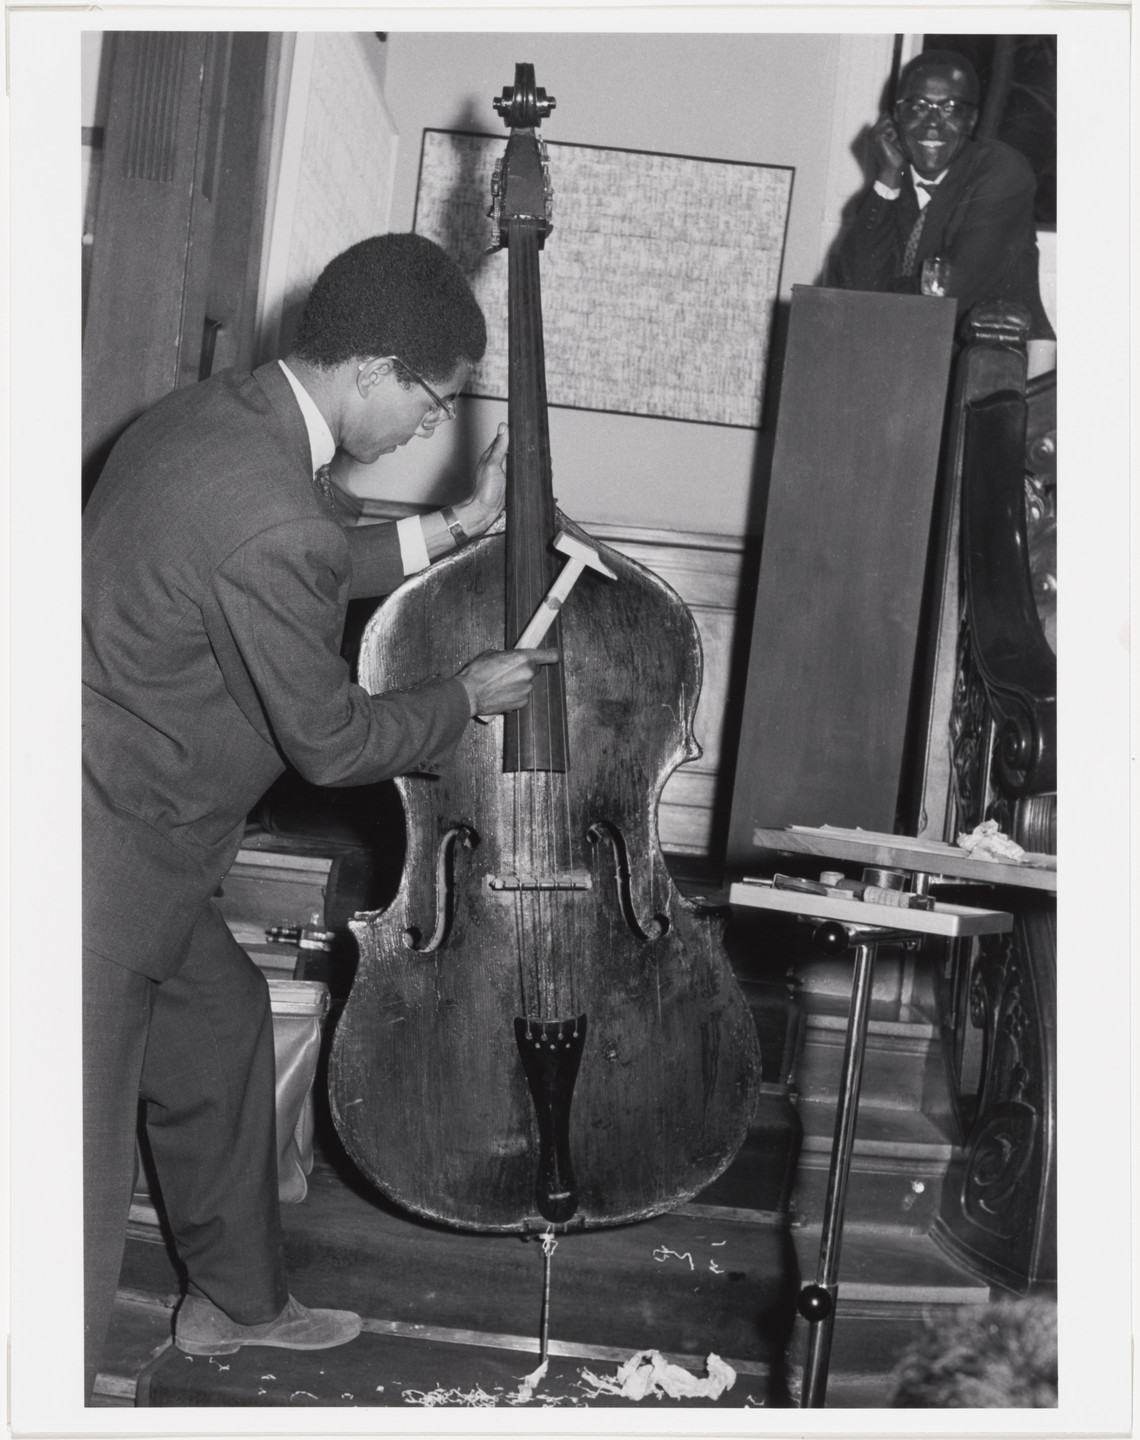 Benjamin Patterson. Benjamin Patterson's Variations for Double-Bass, performed during Kleines Sommerfest: Après John Cage, Galerie Parnass, Wuppertal, West Germany, June 9, 1962. 1962